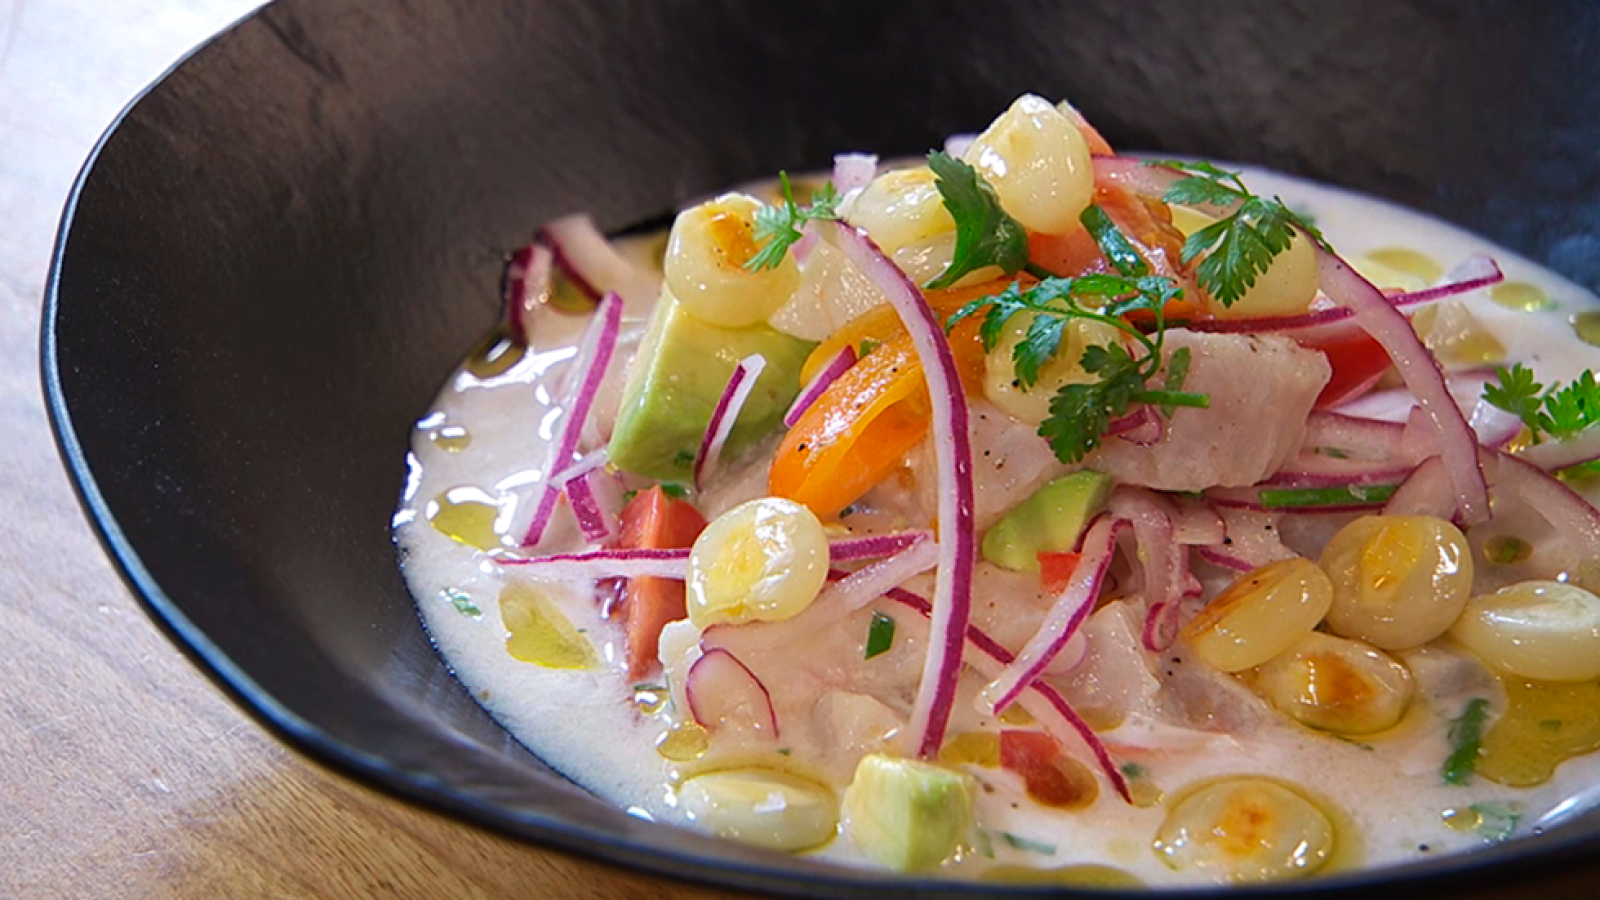 Ceviche Paarung